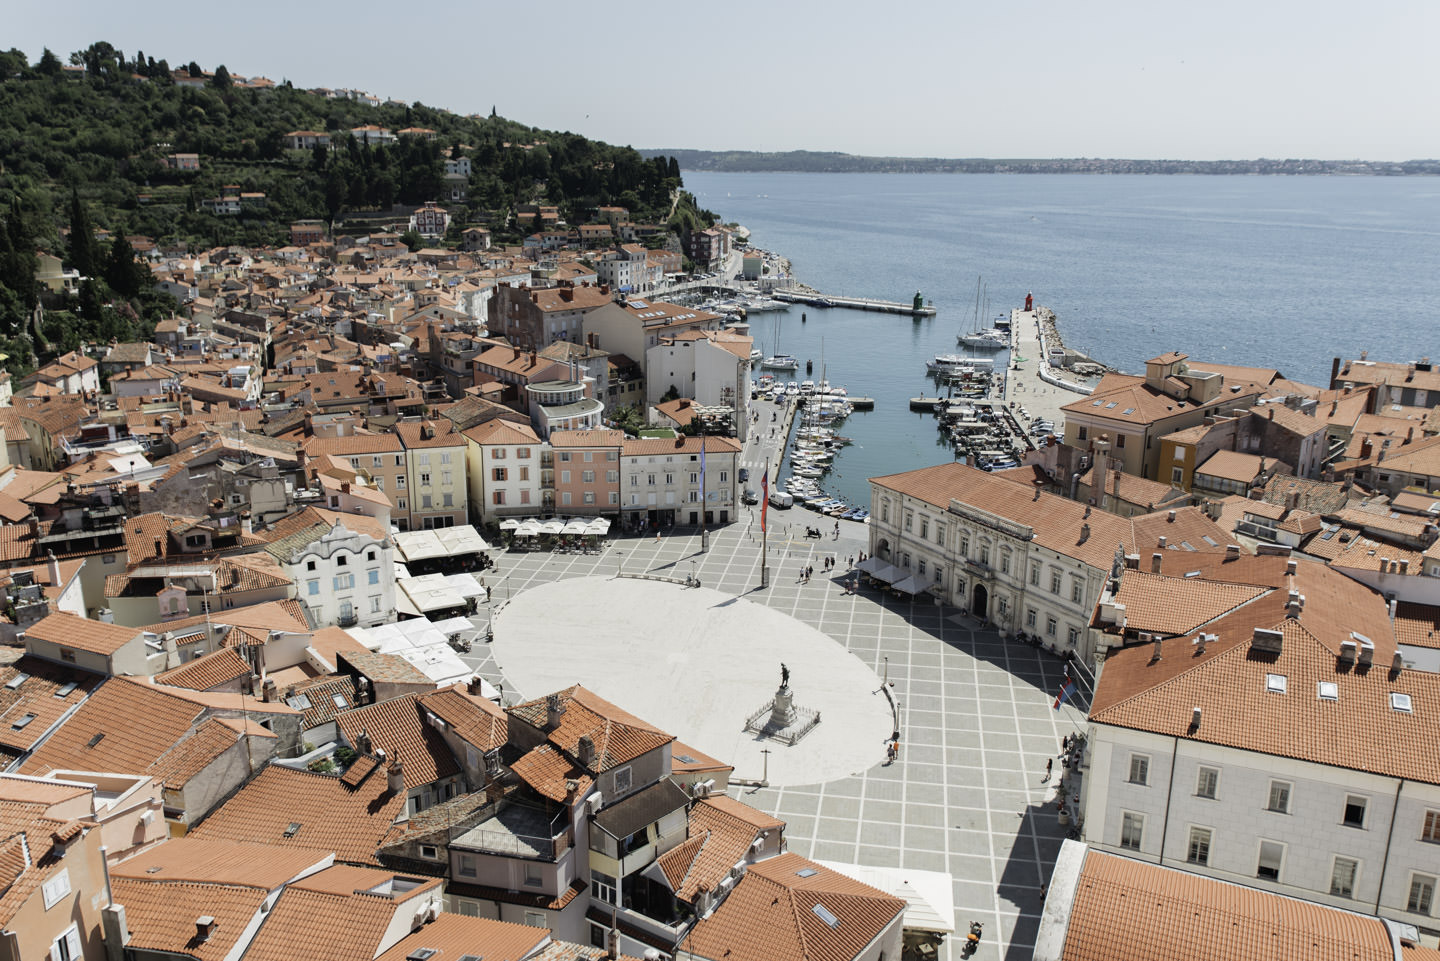 Blog-Mode-And-The-City-Lifestye-Voyage-a-Piran-Slovenie-16